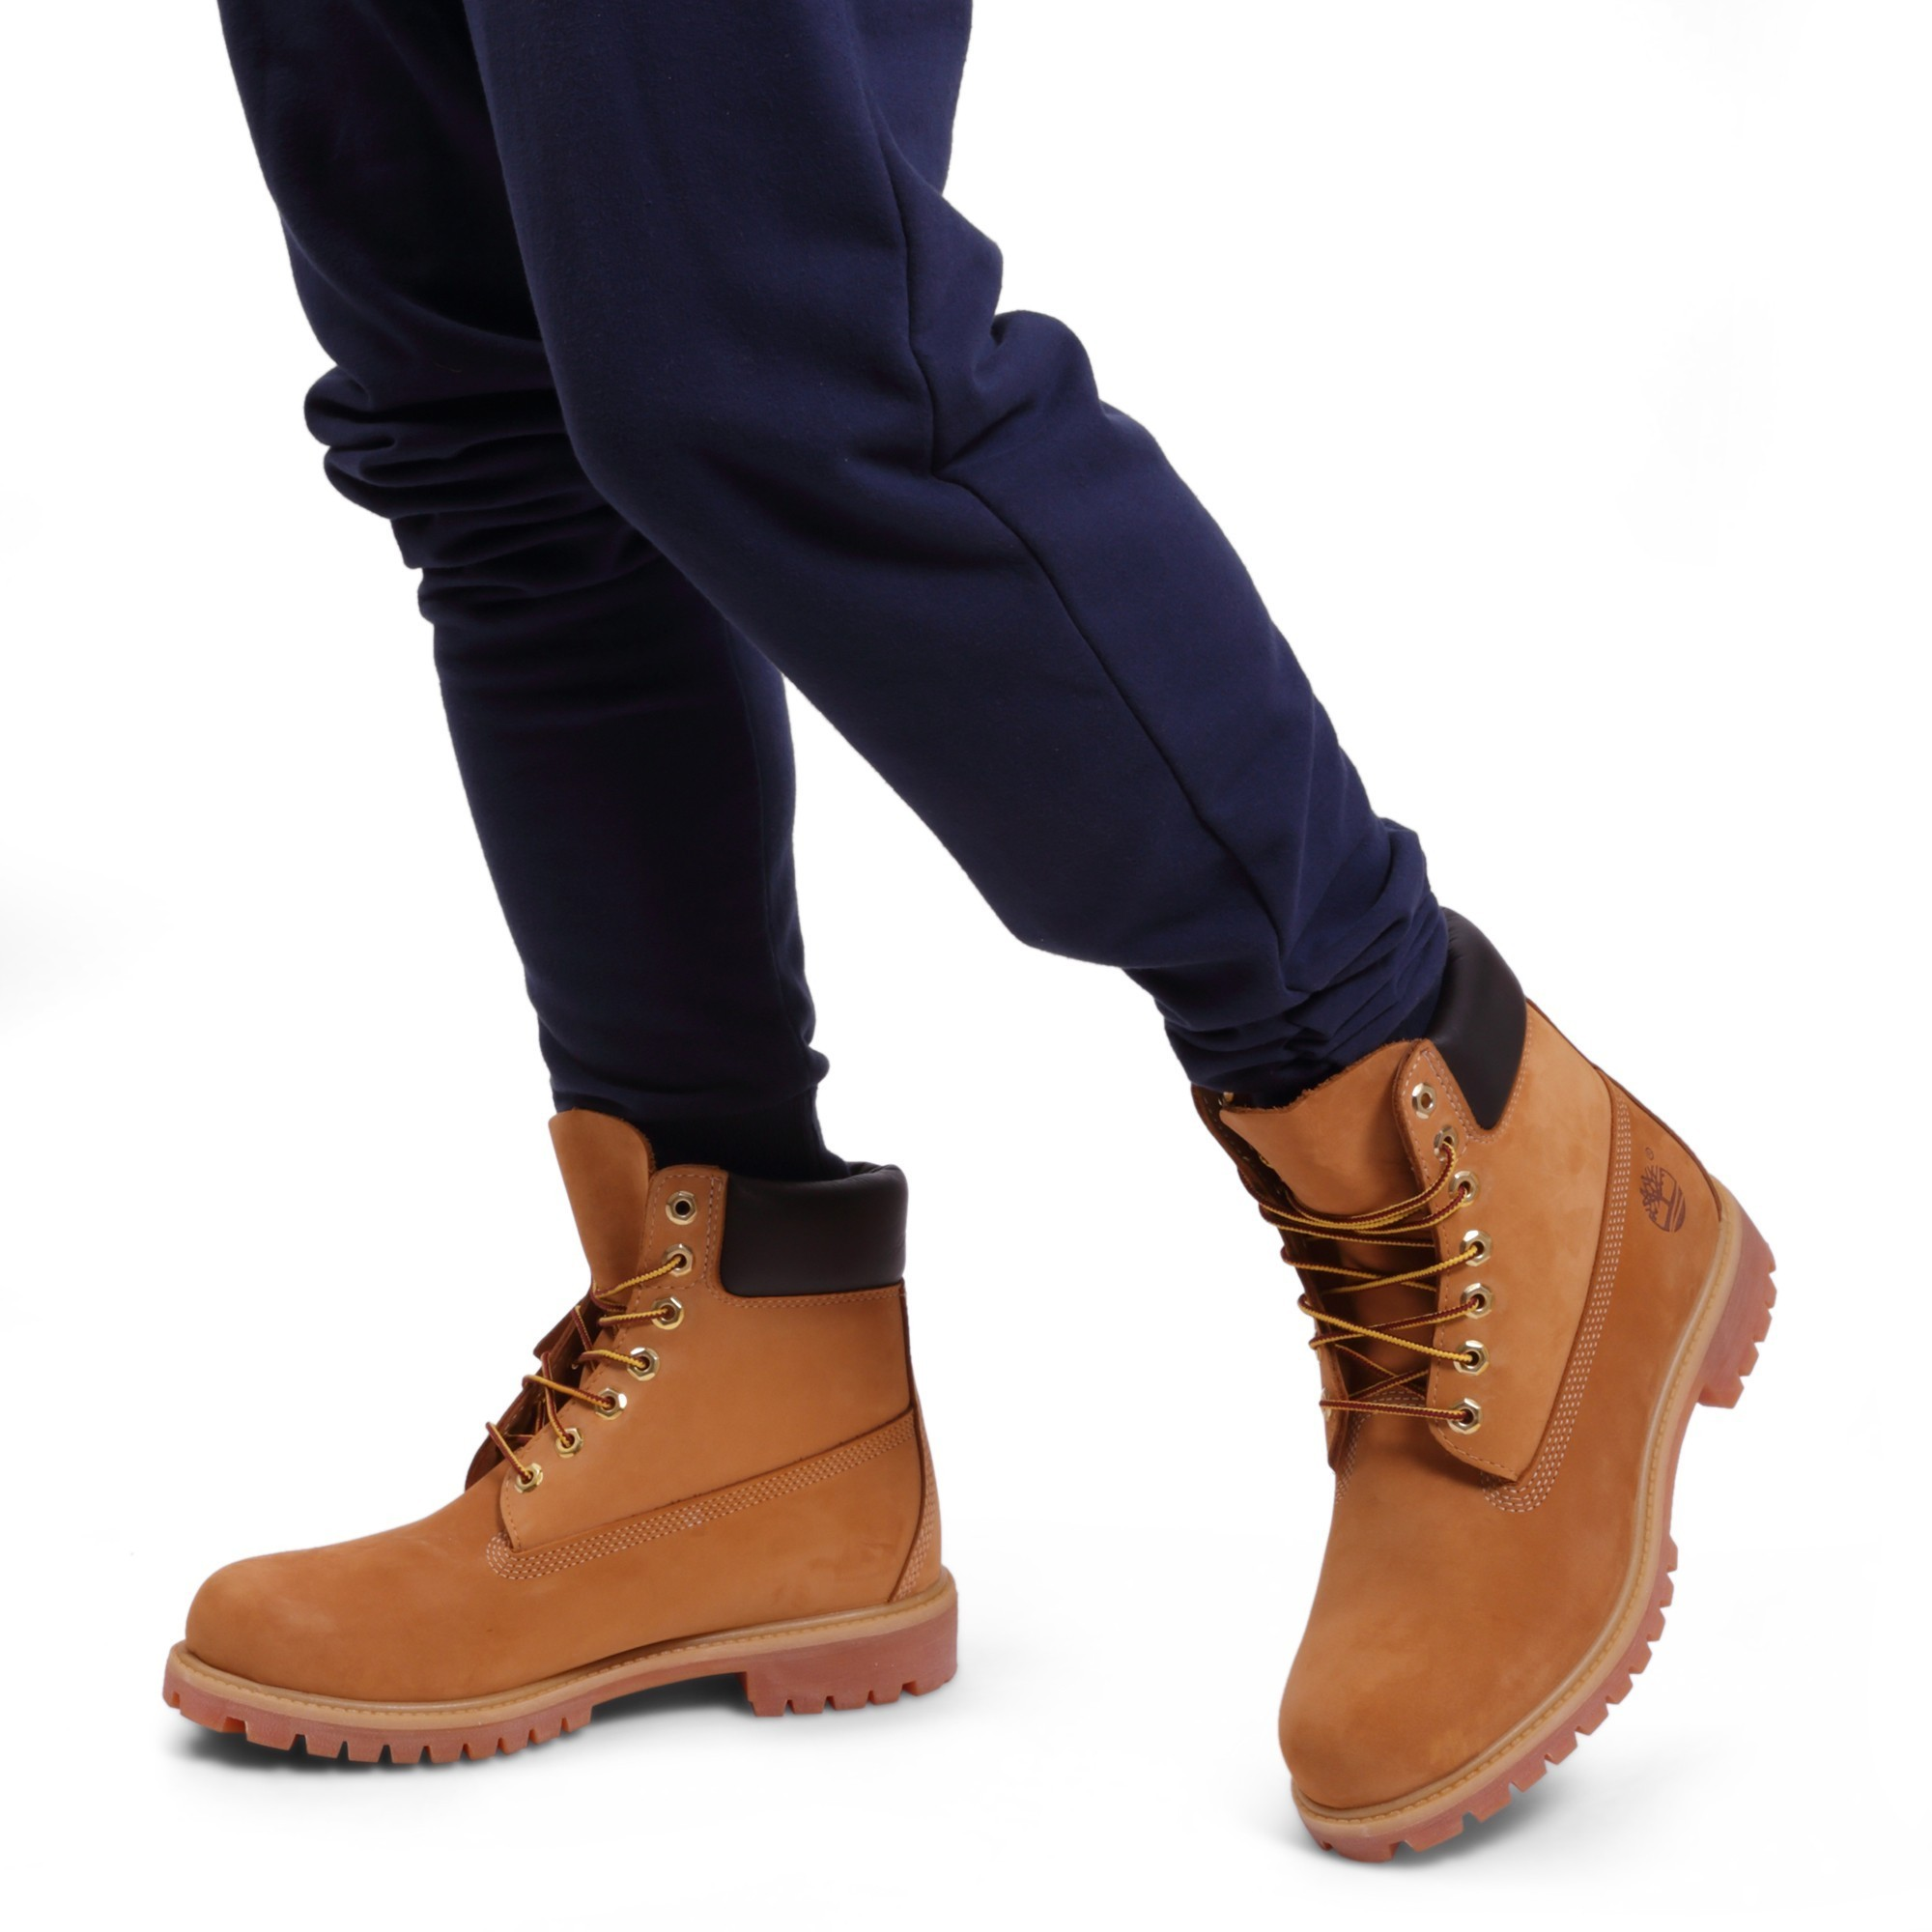 Timberland 6 Inch PRM Boot Wheat